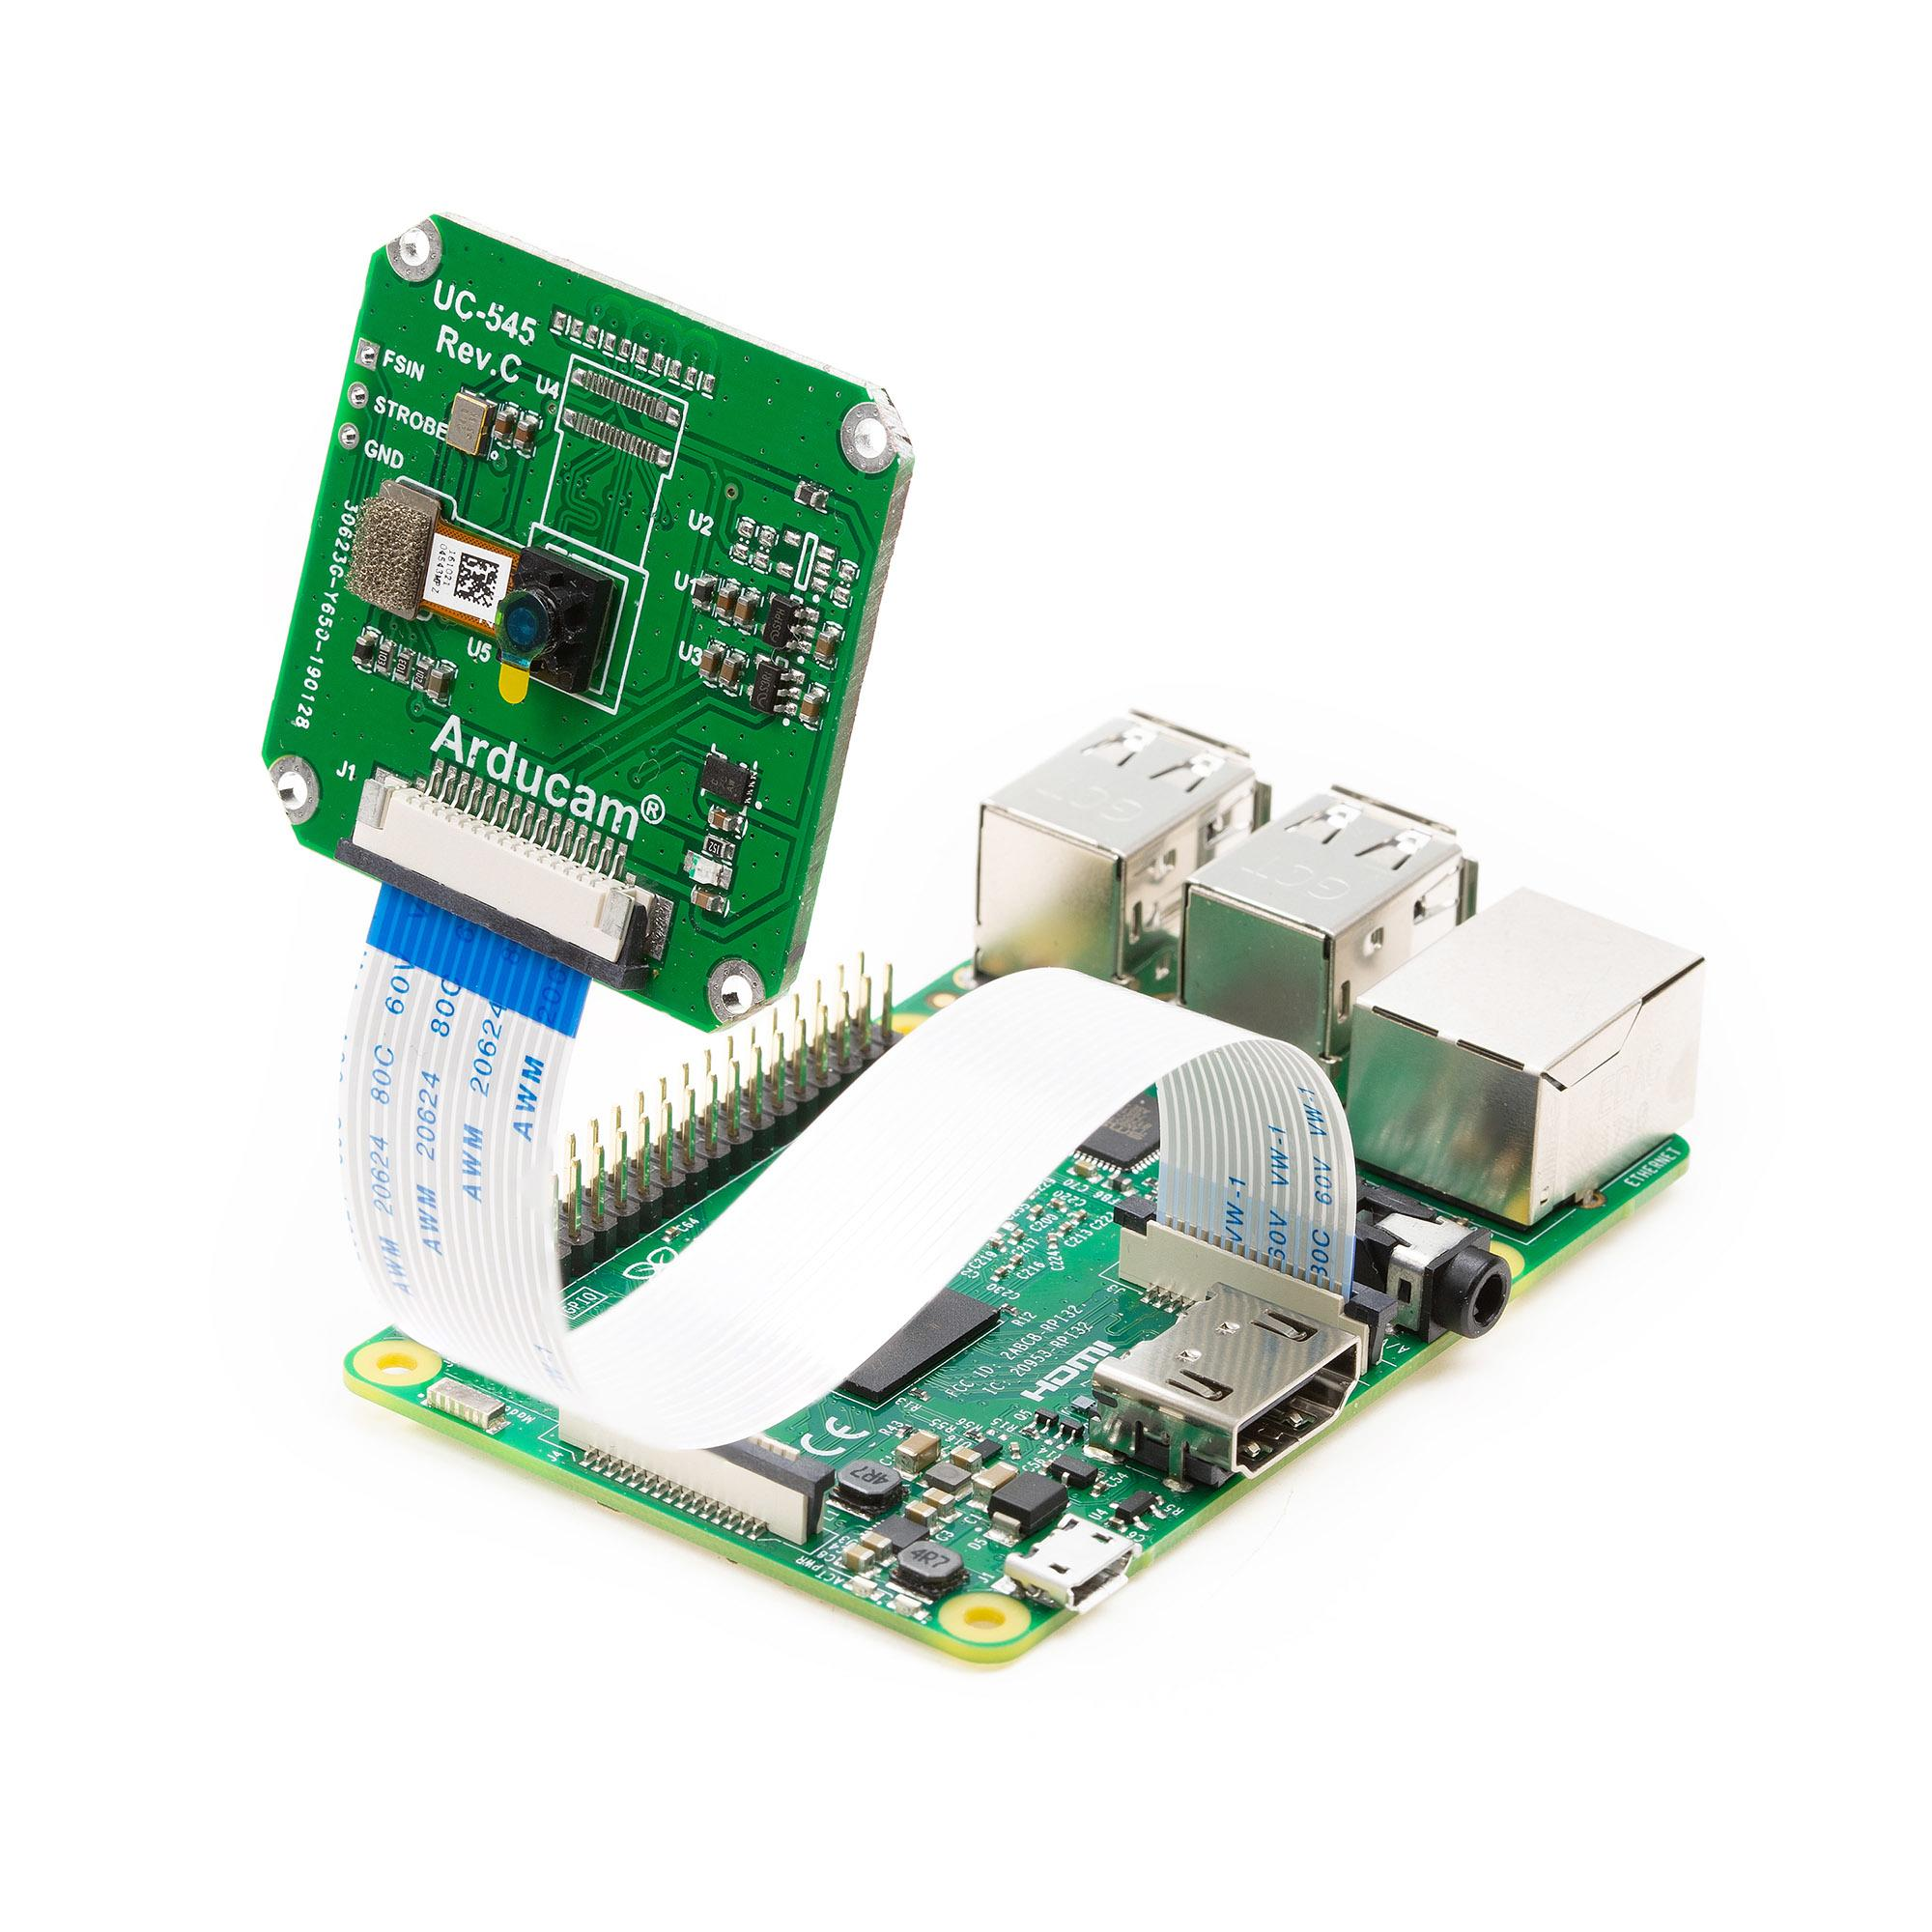 B0161 with RPi